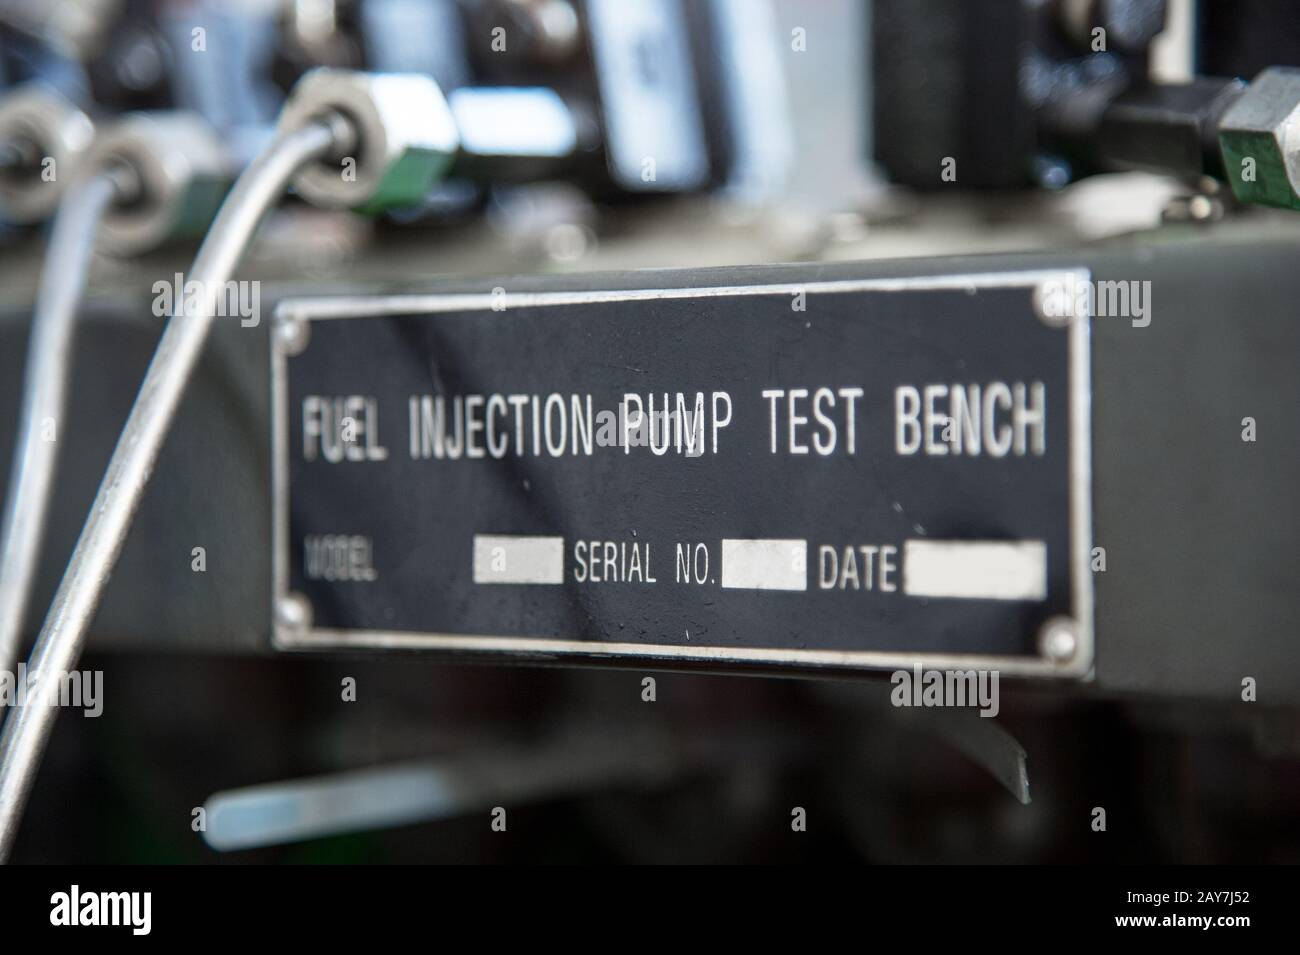 close-up high pressure diesel fuel pump test bench Stock Photo